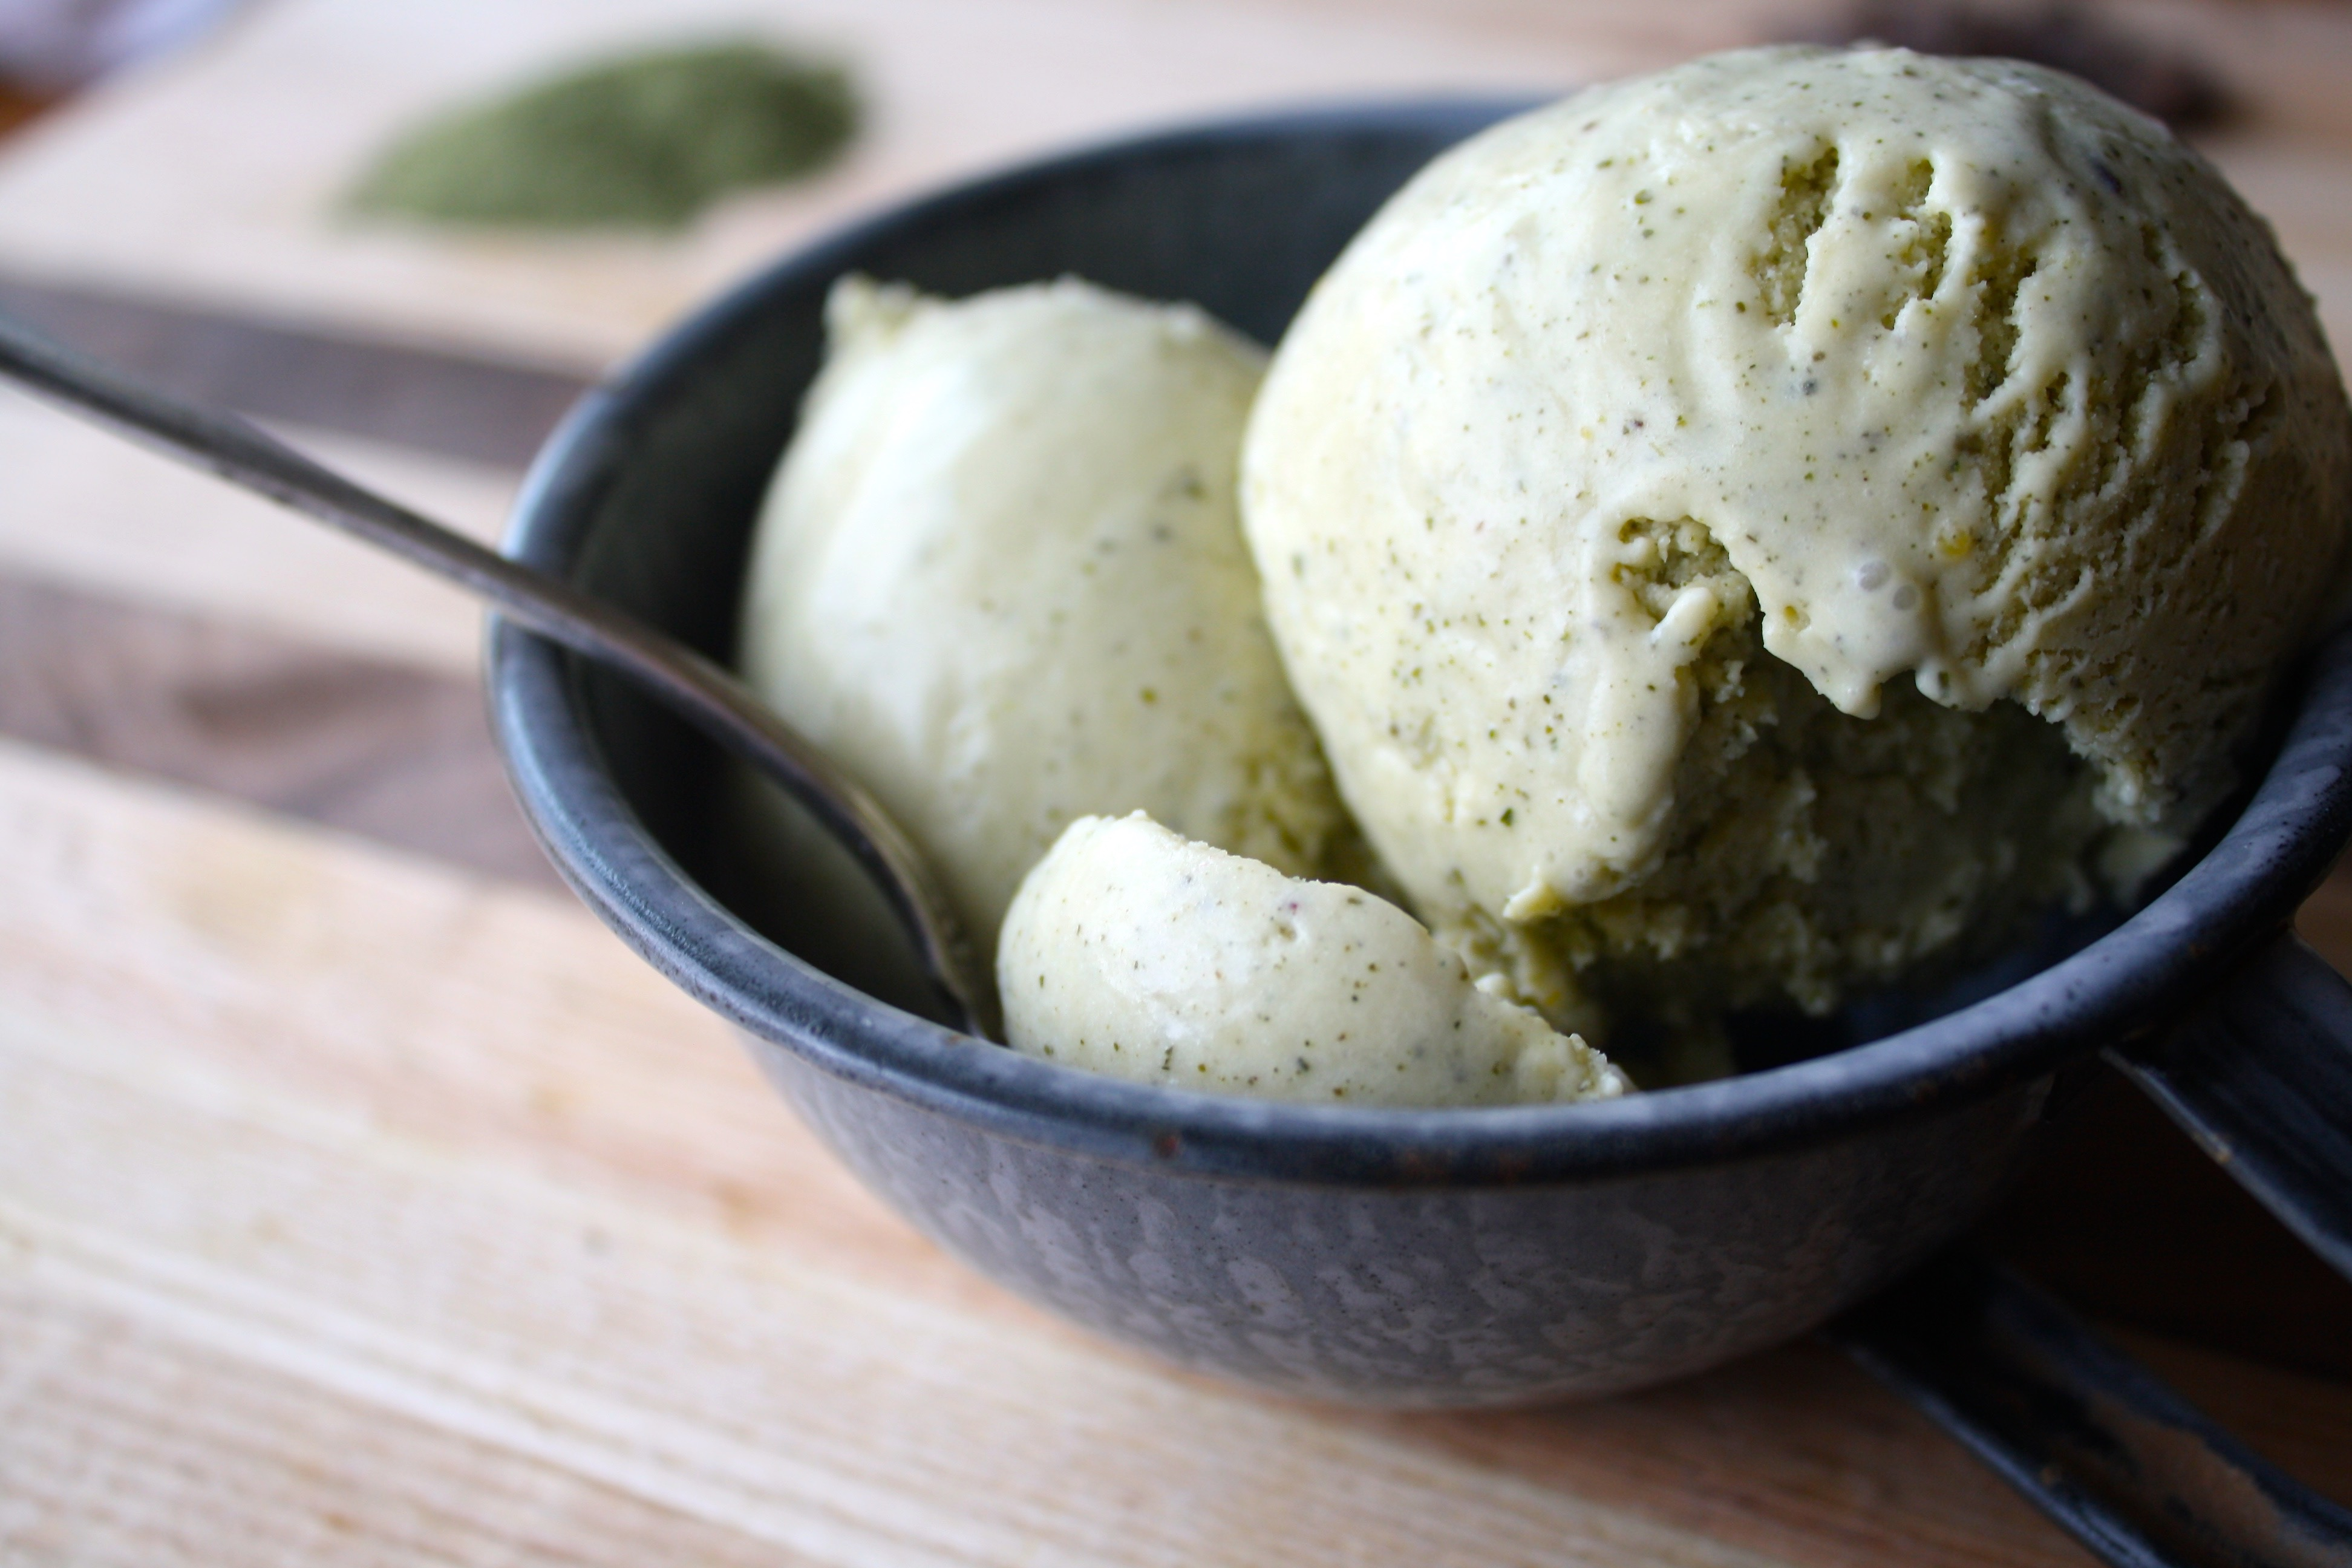 Photograph of green tea ice cream set in a gray metal bowl